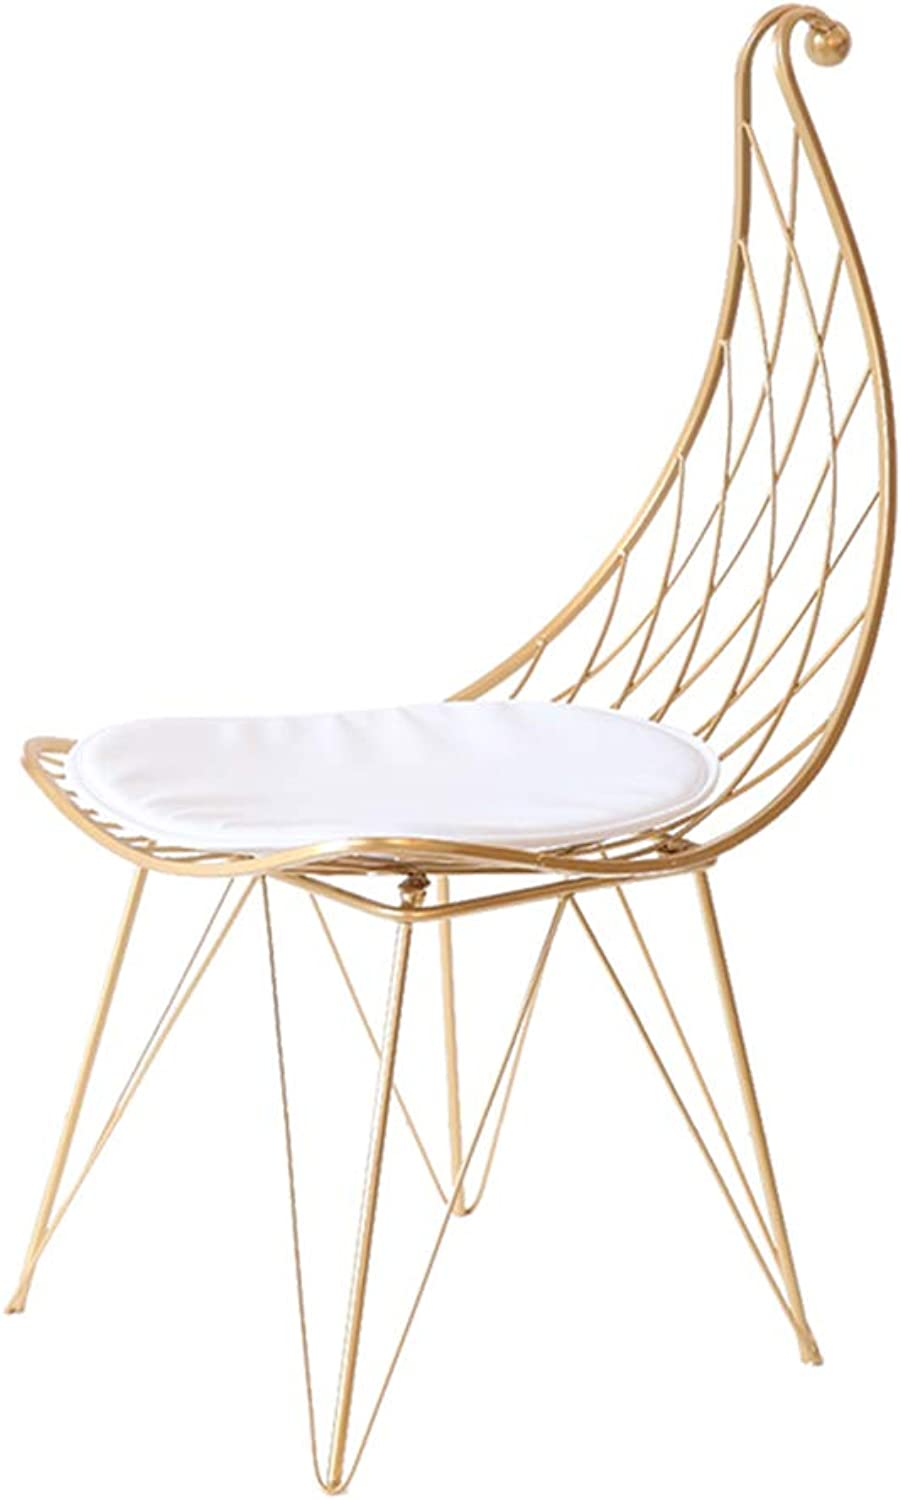 Xiao Mi Guo Ji- Solid Wood Chair - PU Soft Cushion Folding Chair Solid Wood Chair with armrests with backrest Dinette Lounge Chair Assembly Size  55  57  78cm Home Chair